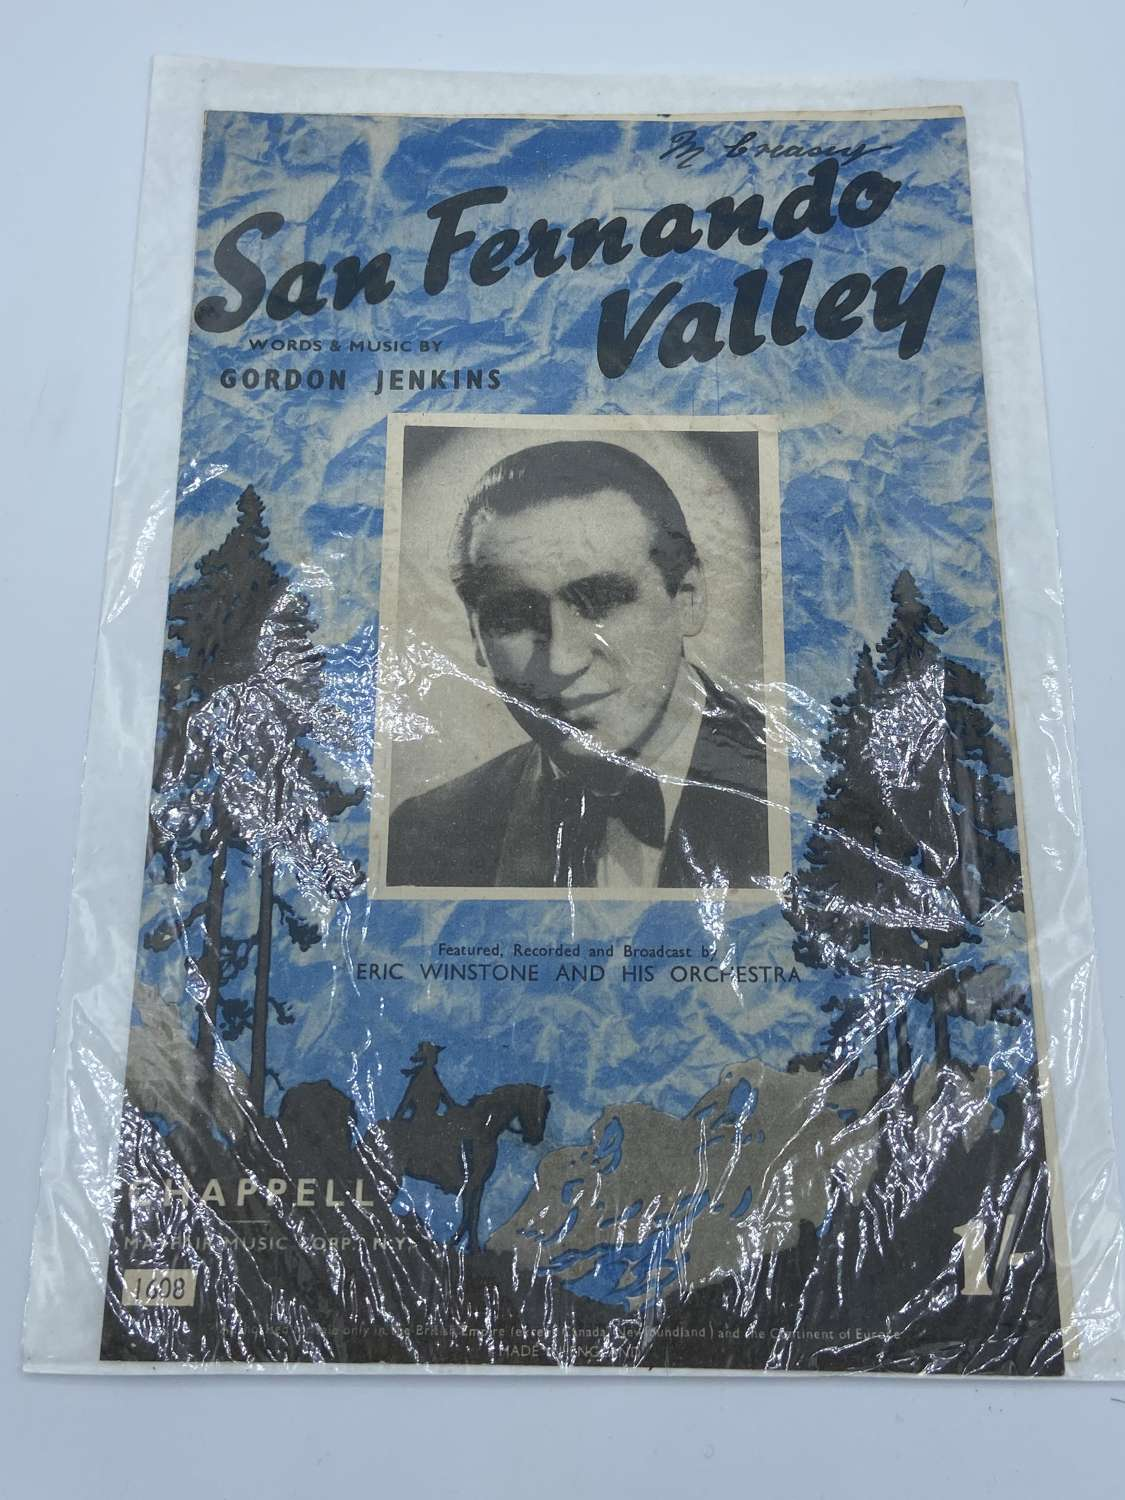 WW2 1943 San Fernando Valley Eric Winston Sheet Music